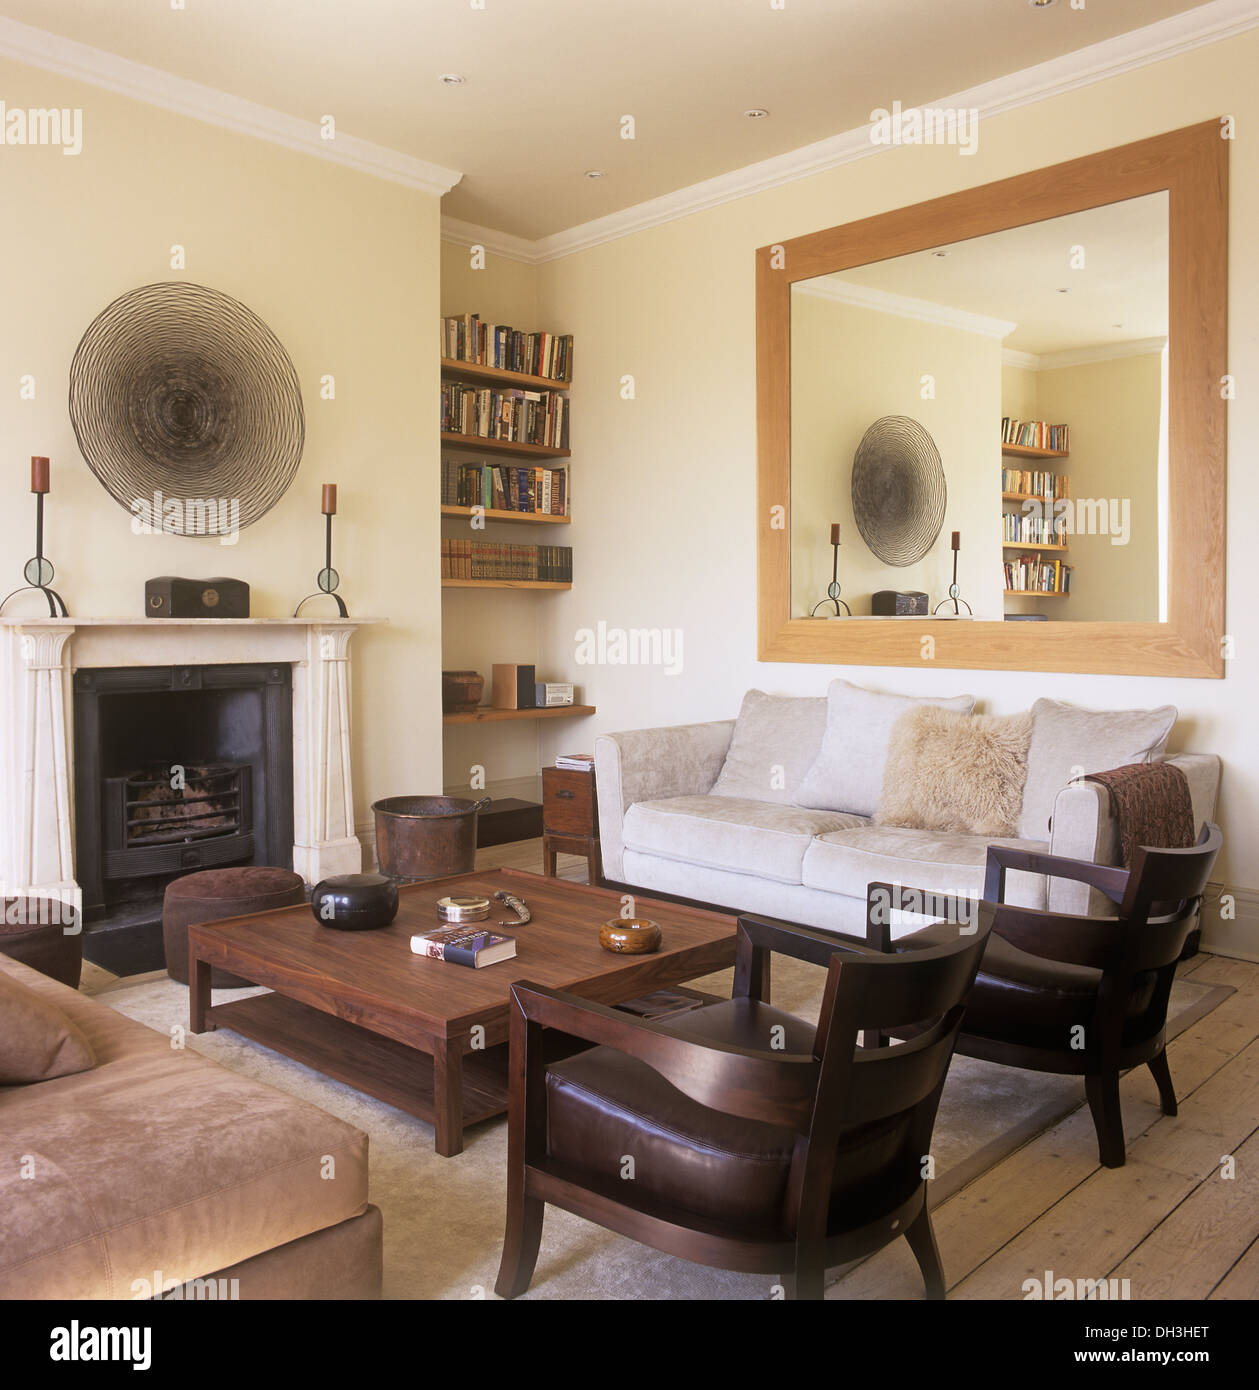 Large Mirror Above Sofa In Townhouse Living Room With Wooden Coffee Table  And Wood+leather Chairs In Front Of Fireplace